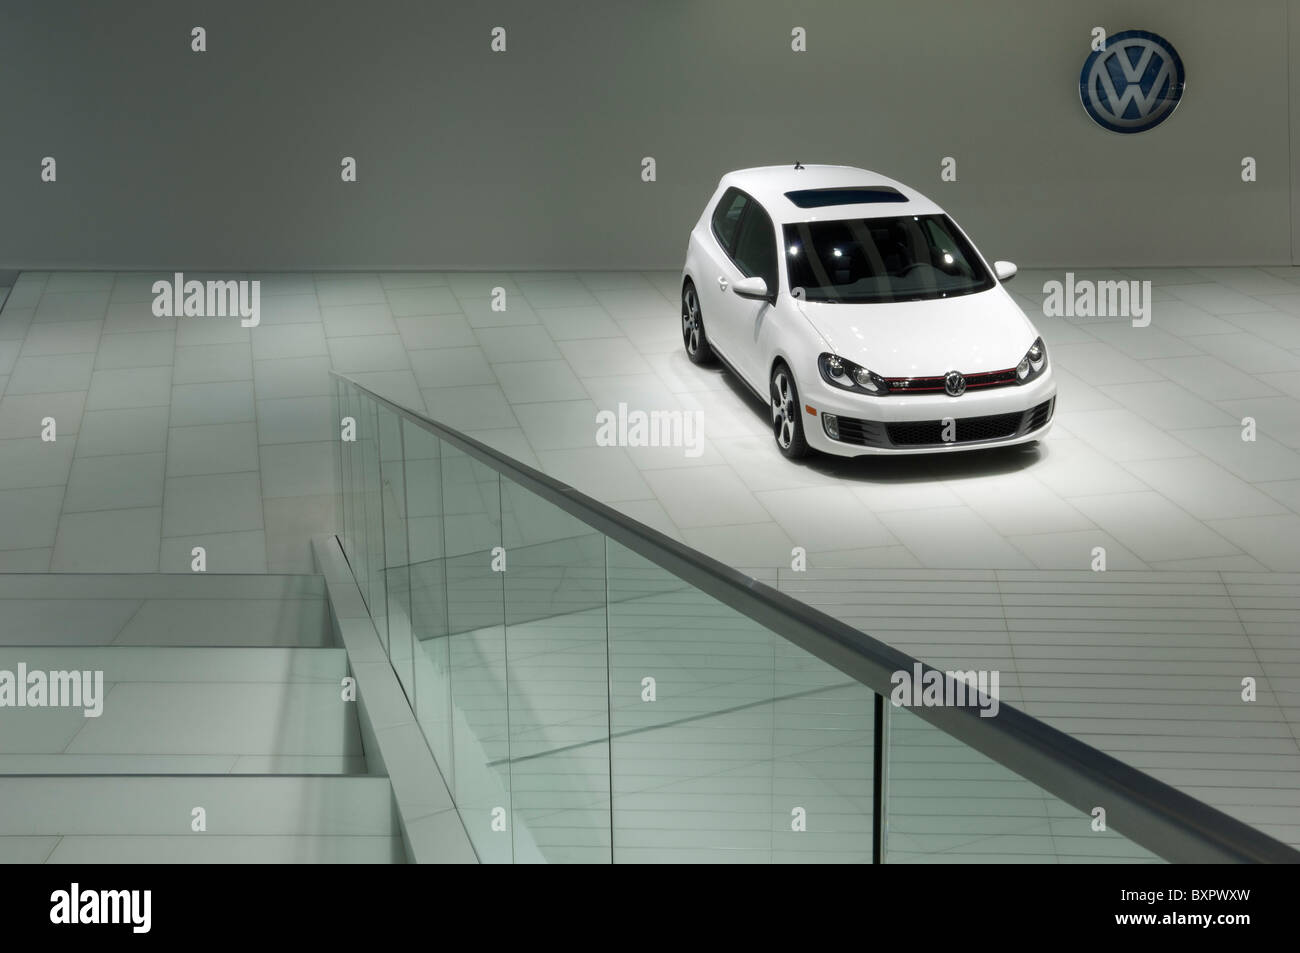 2011 Volkswagen Golf at the 2010 North American International Auto Show - Stock Image